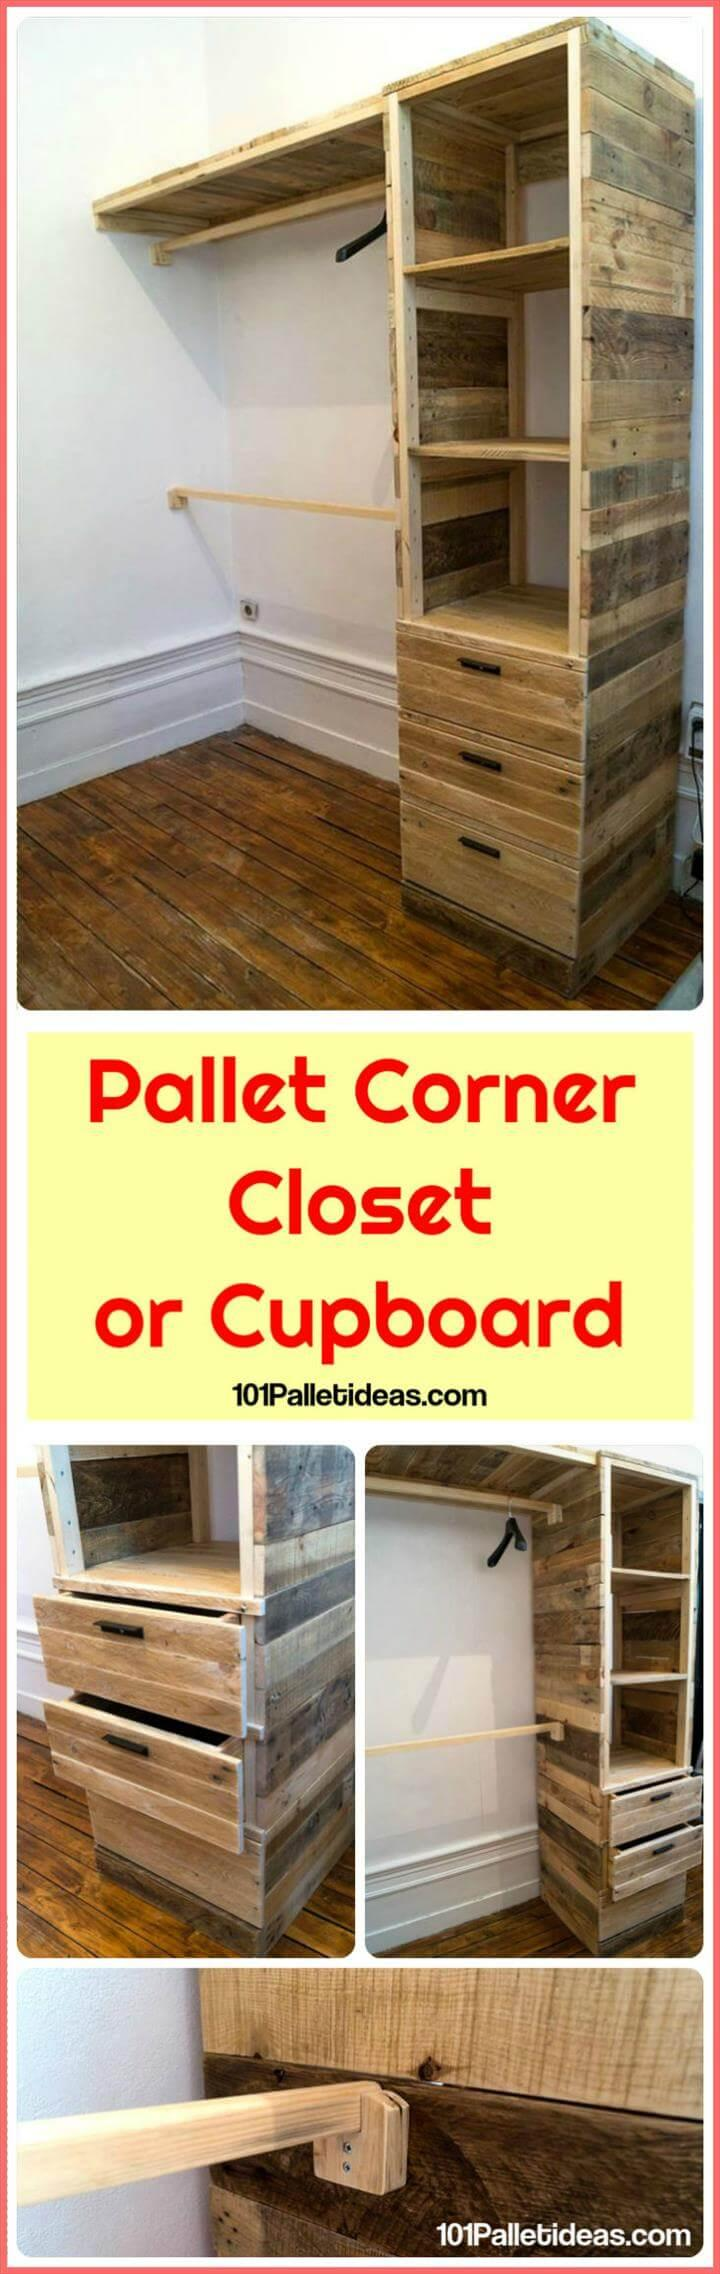 Pallet Closet or Cupboard